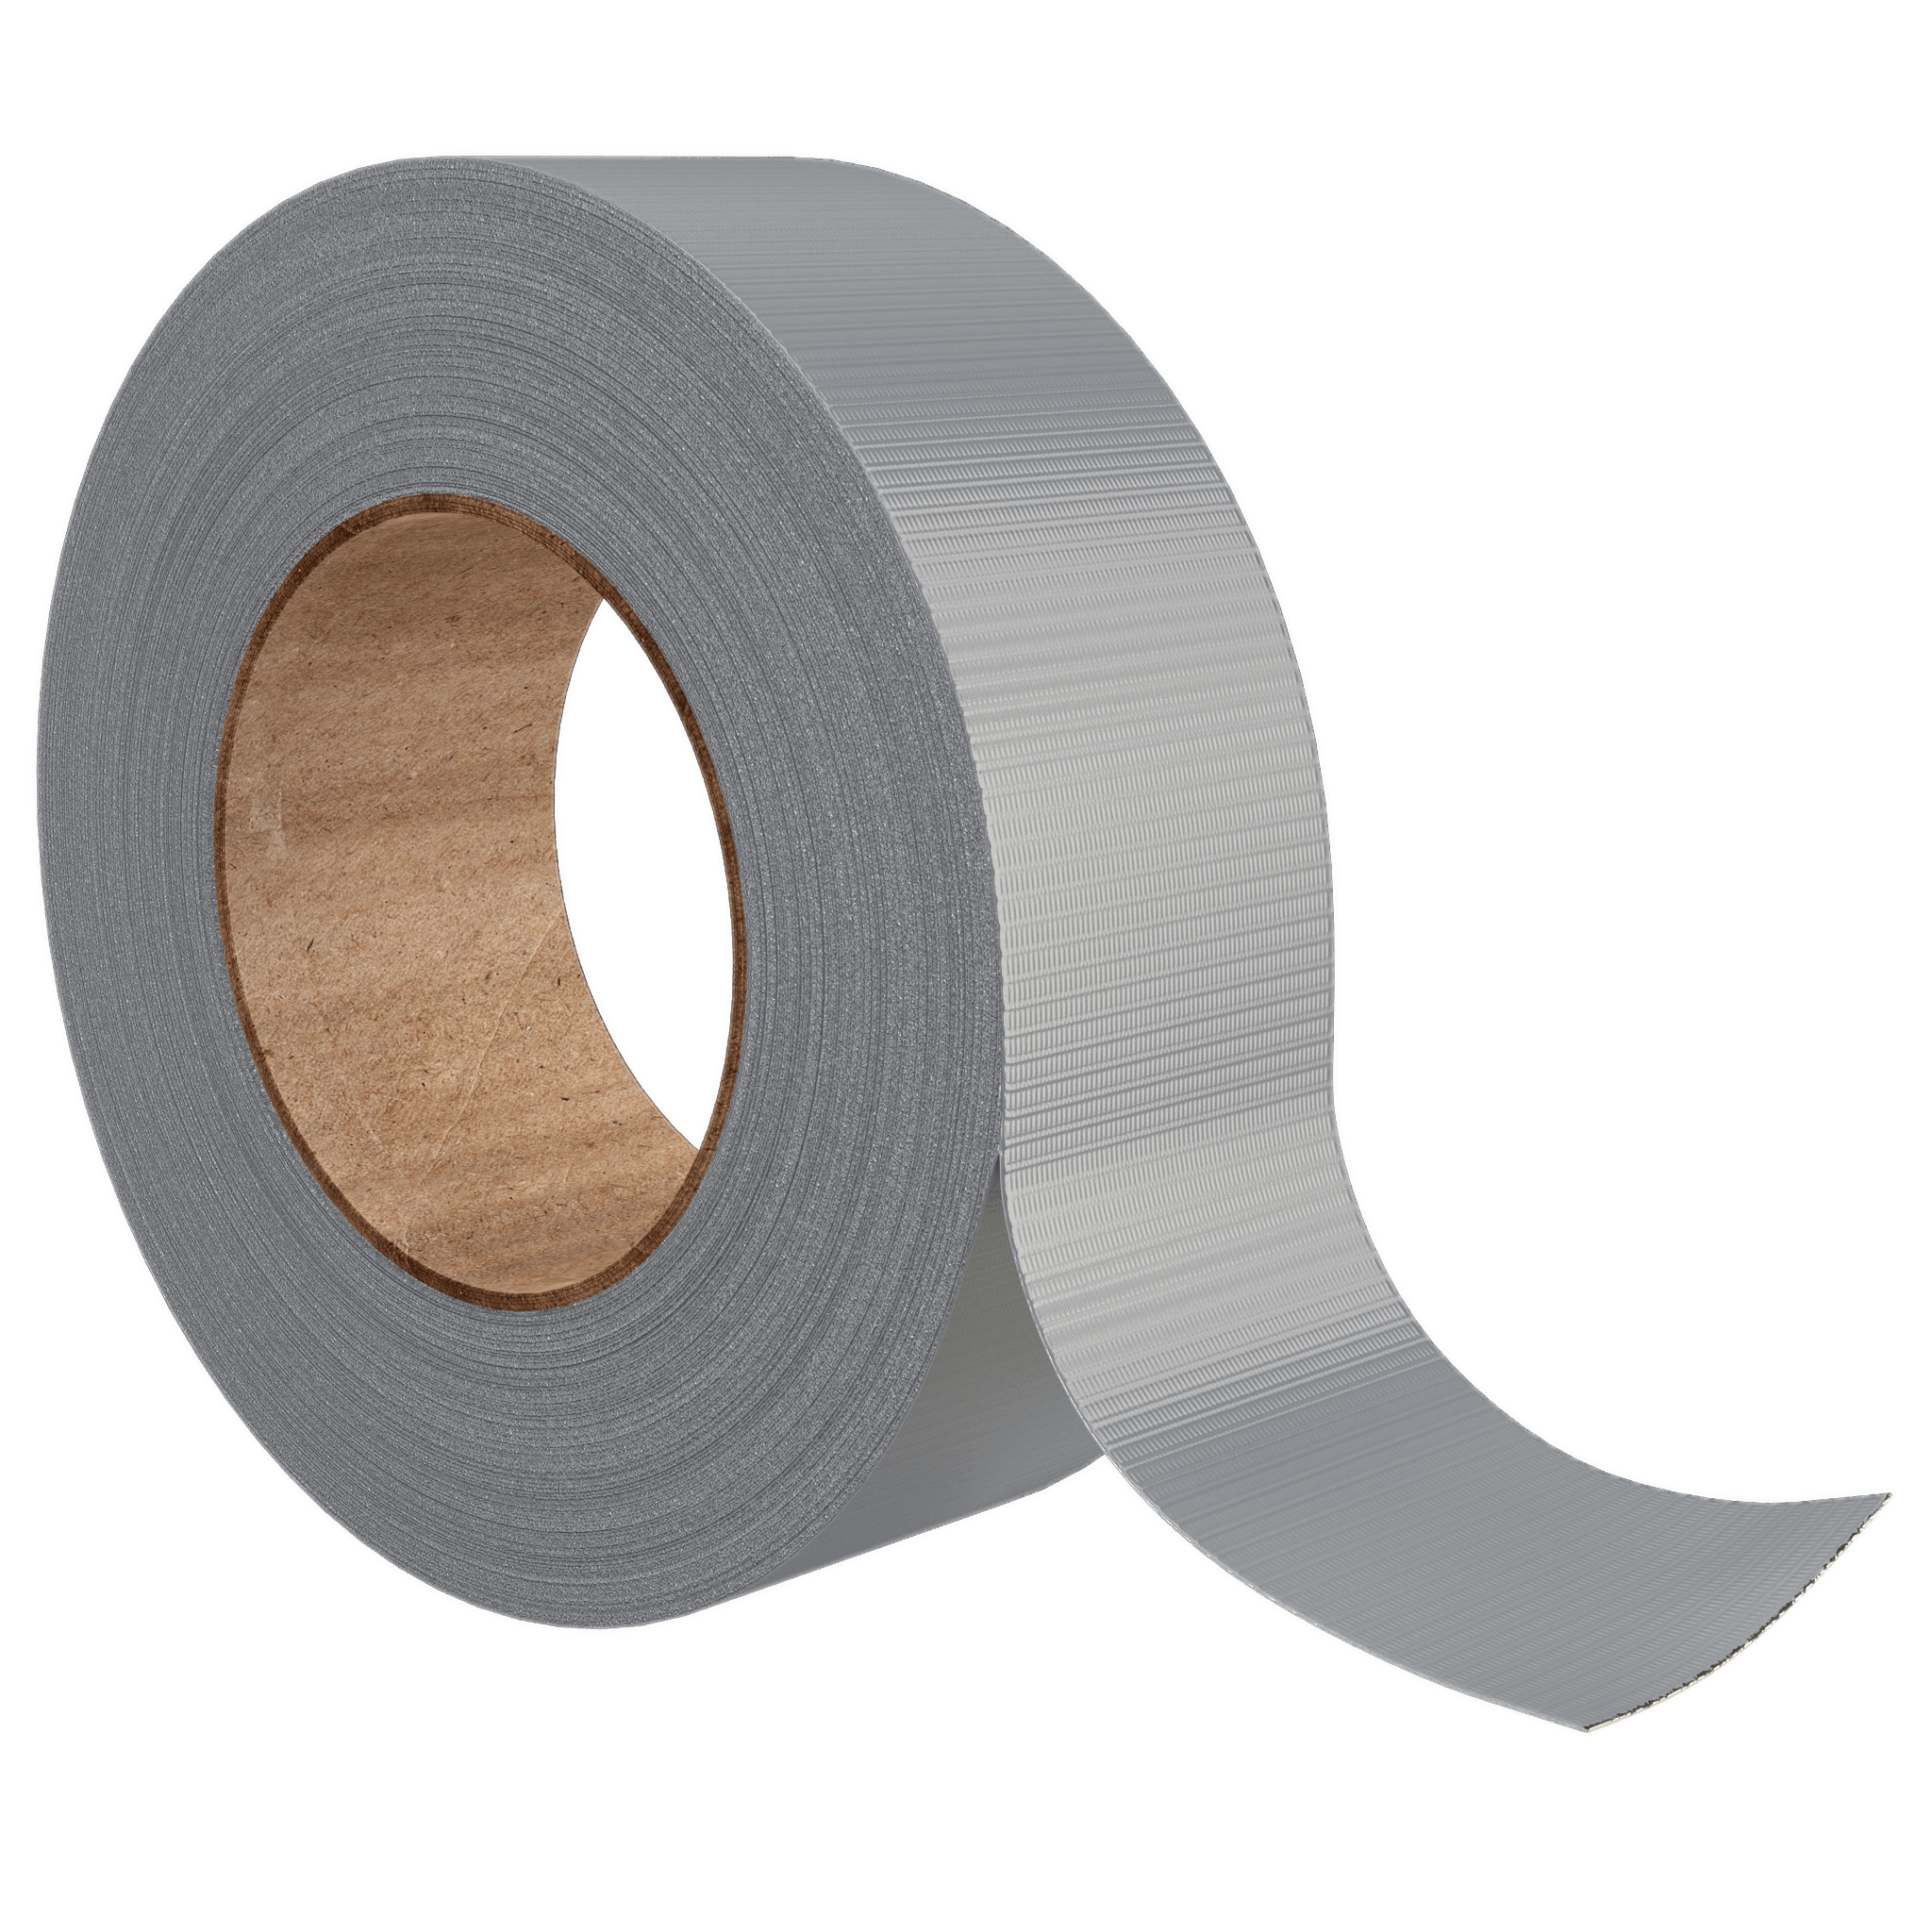 Grey duct transparent png. Tape clipart clear image royalty free